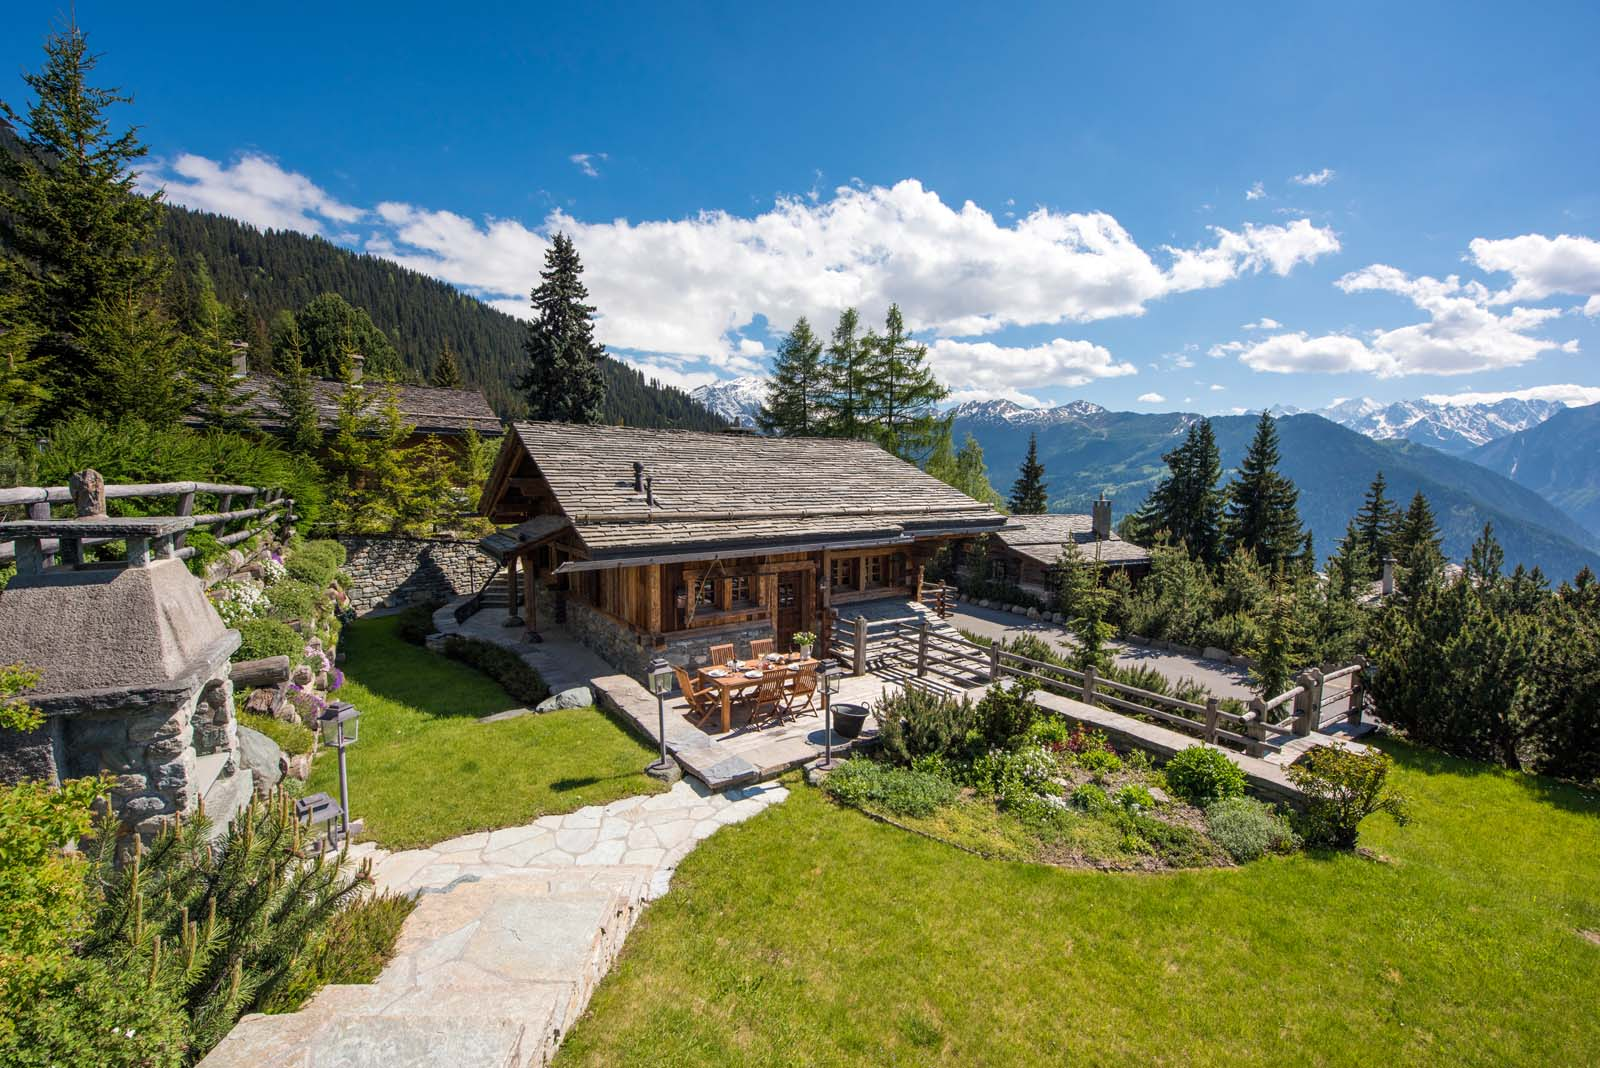 Chalet le ti in verbier by skiboutique for Mtn chalet